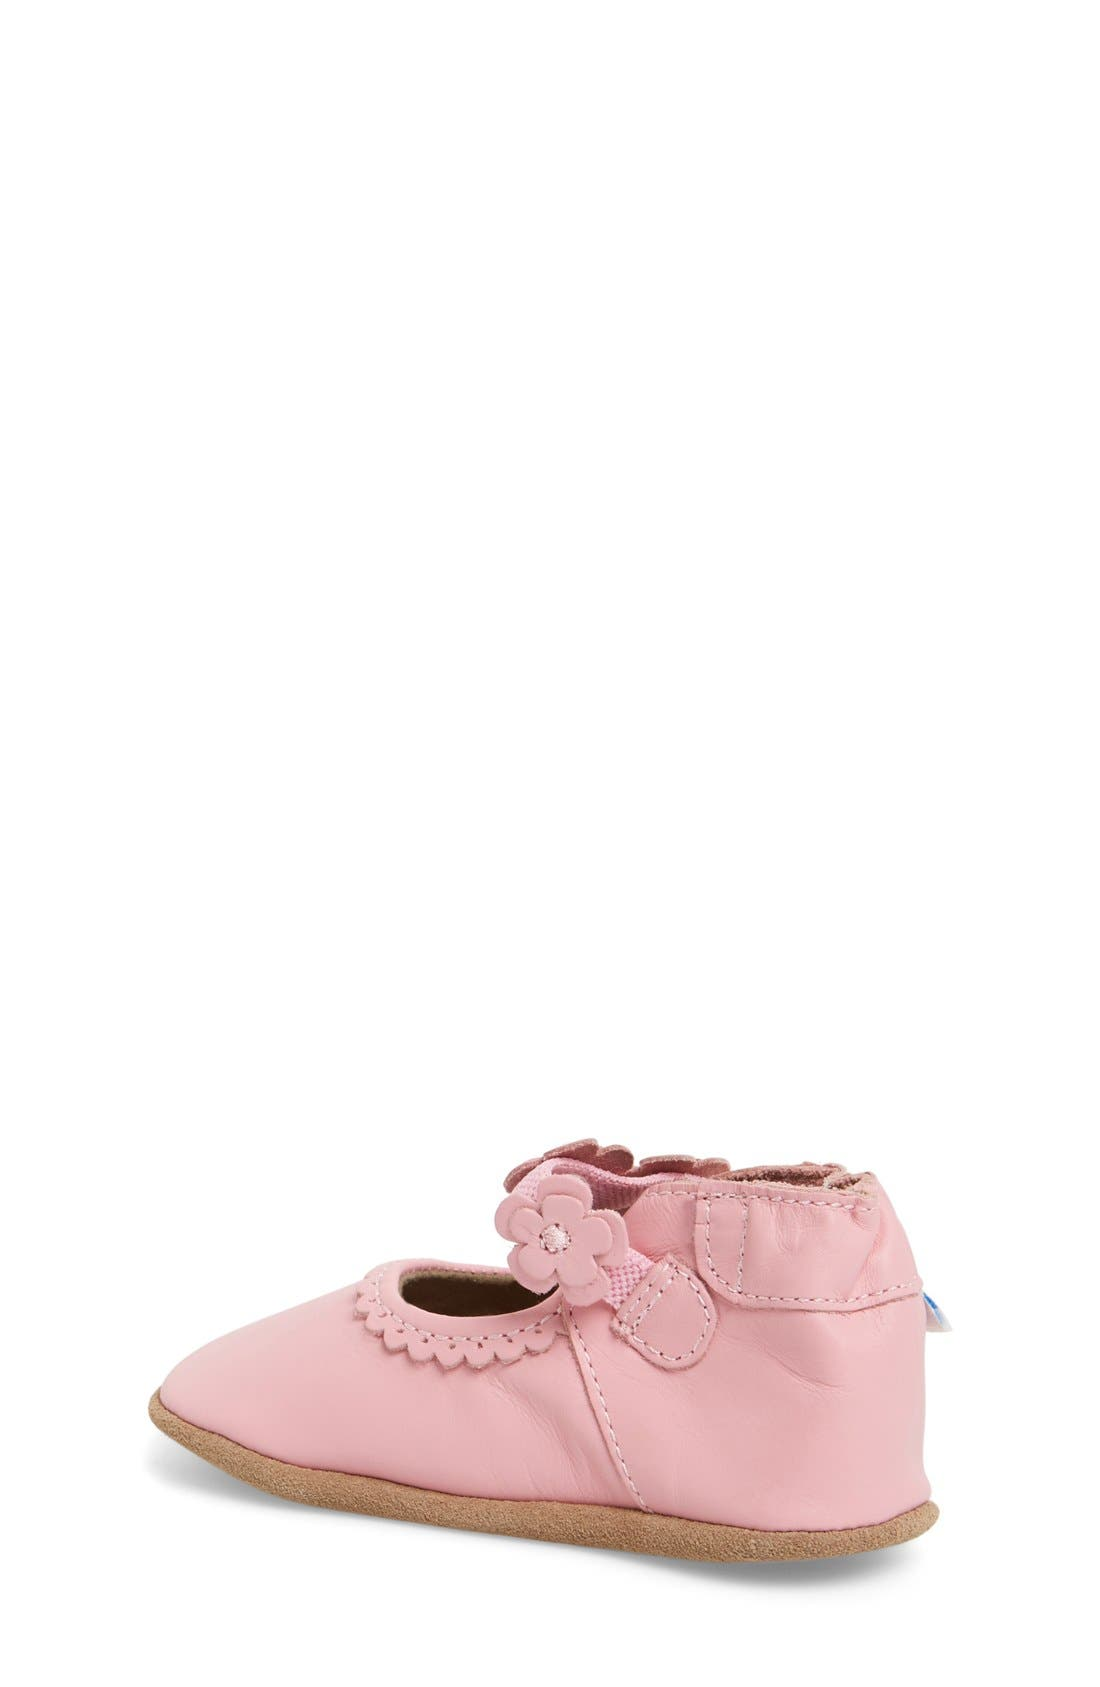 'Claire' Mary Jane Crib Shoe,                             Alternate thumbnail 3, color,                             PRISM PINK